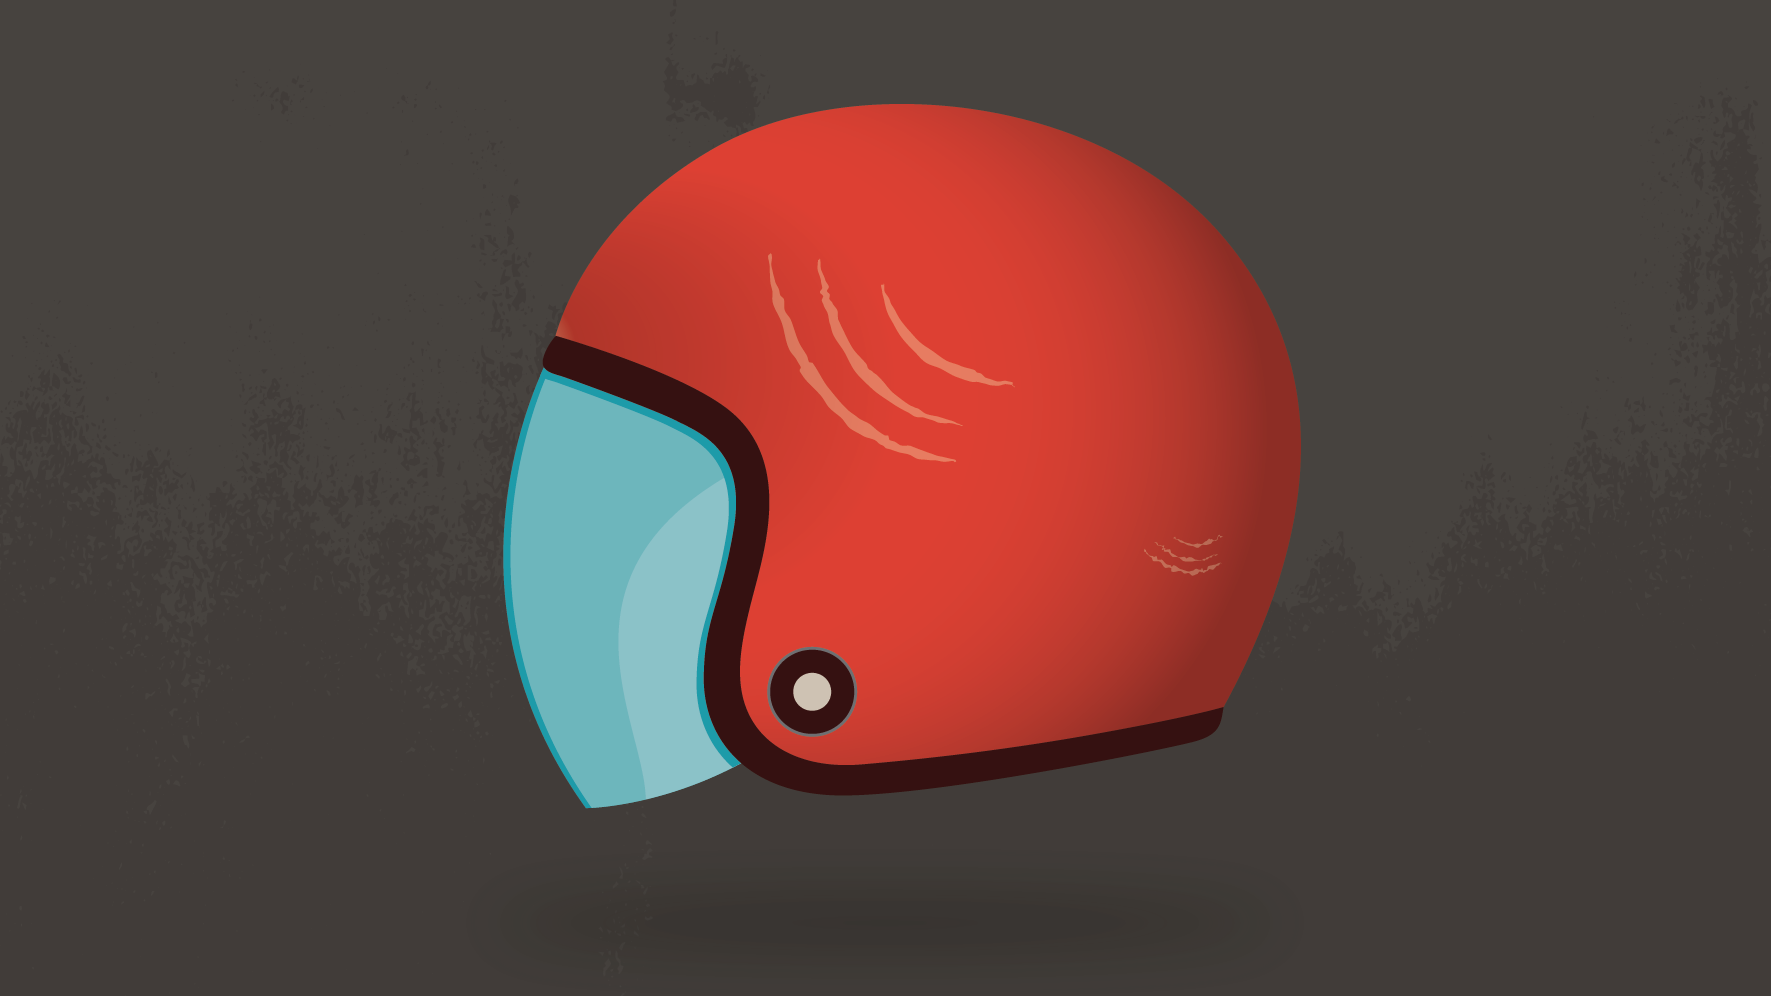 Illustration of a red motorcycle helmet